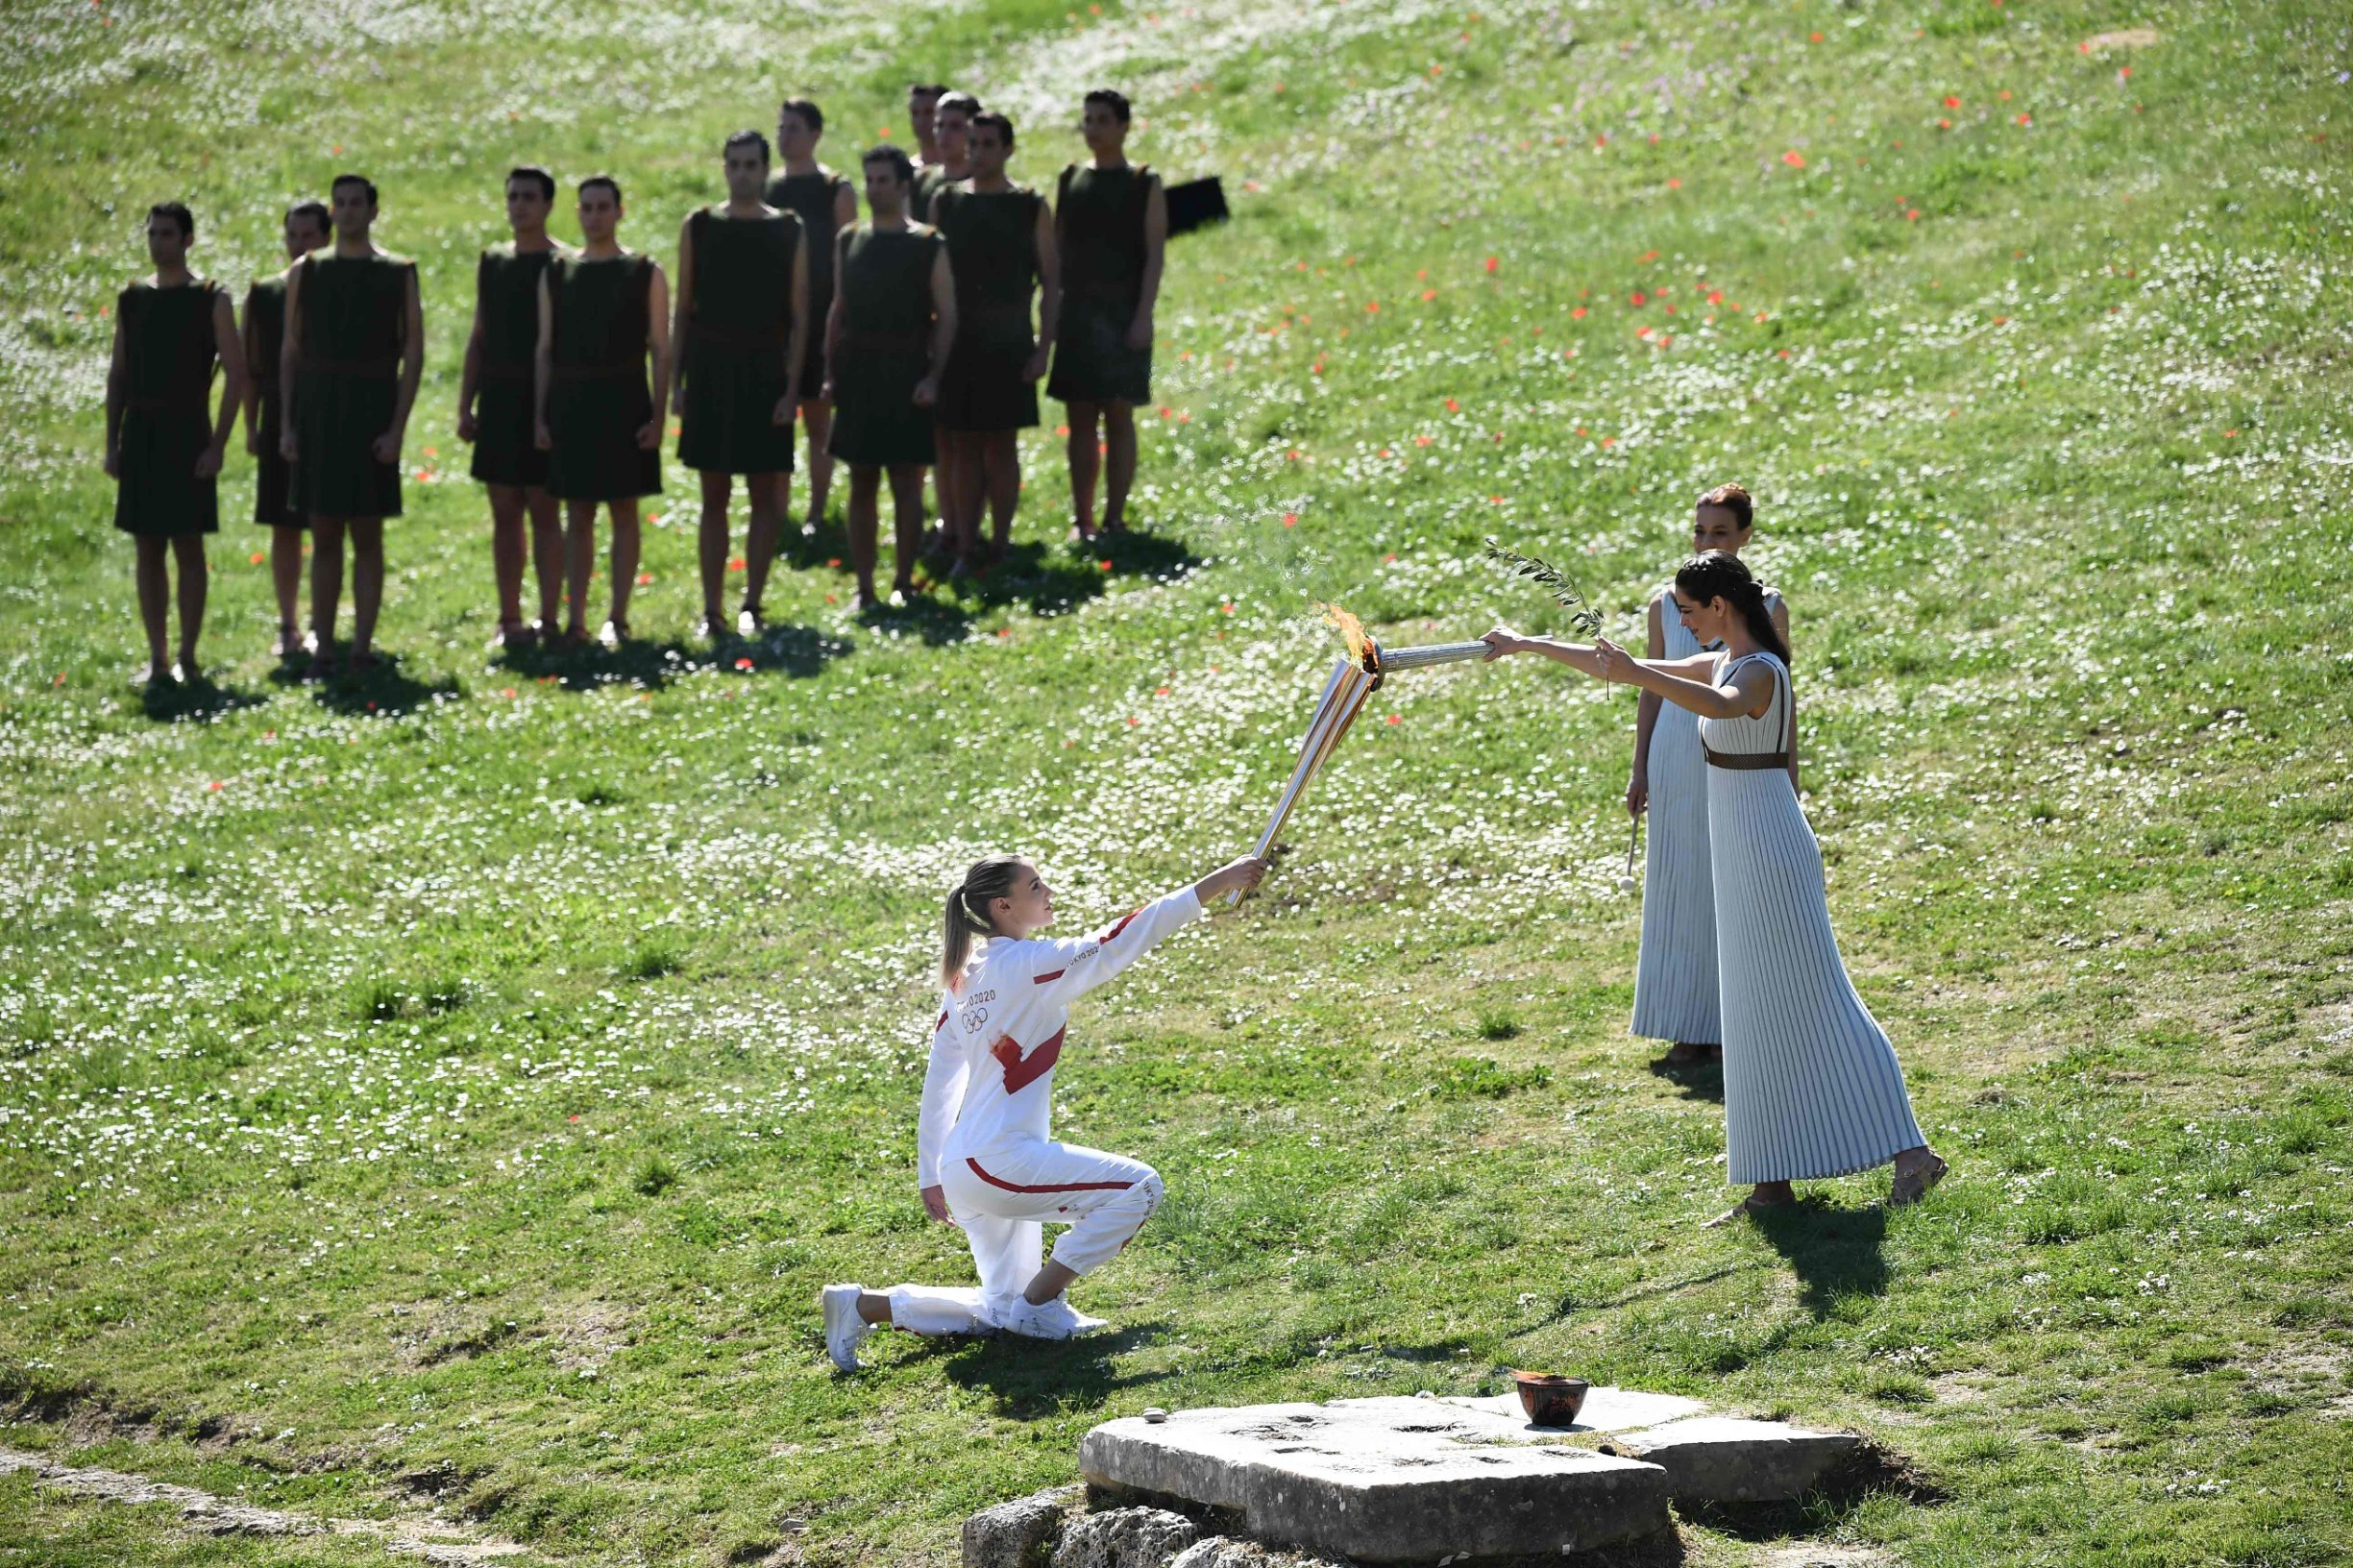 TOPSHOT - Torchbearer Greece's Anna Korakaki (L), Rio 2016 gold medallist in the 25m pistol shooting, receives the Olympic flame during the flame lighting ceremony on March 12, 2020 in ancient Olympia, ahead of the Tokyo 2020 Olympic Games. (Photo by ARIS MESSINIS / AFP)